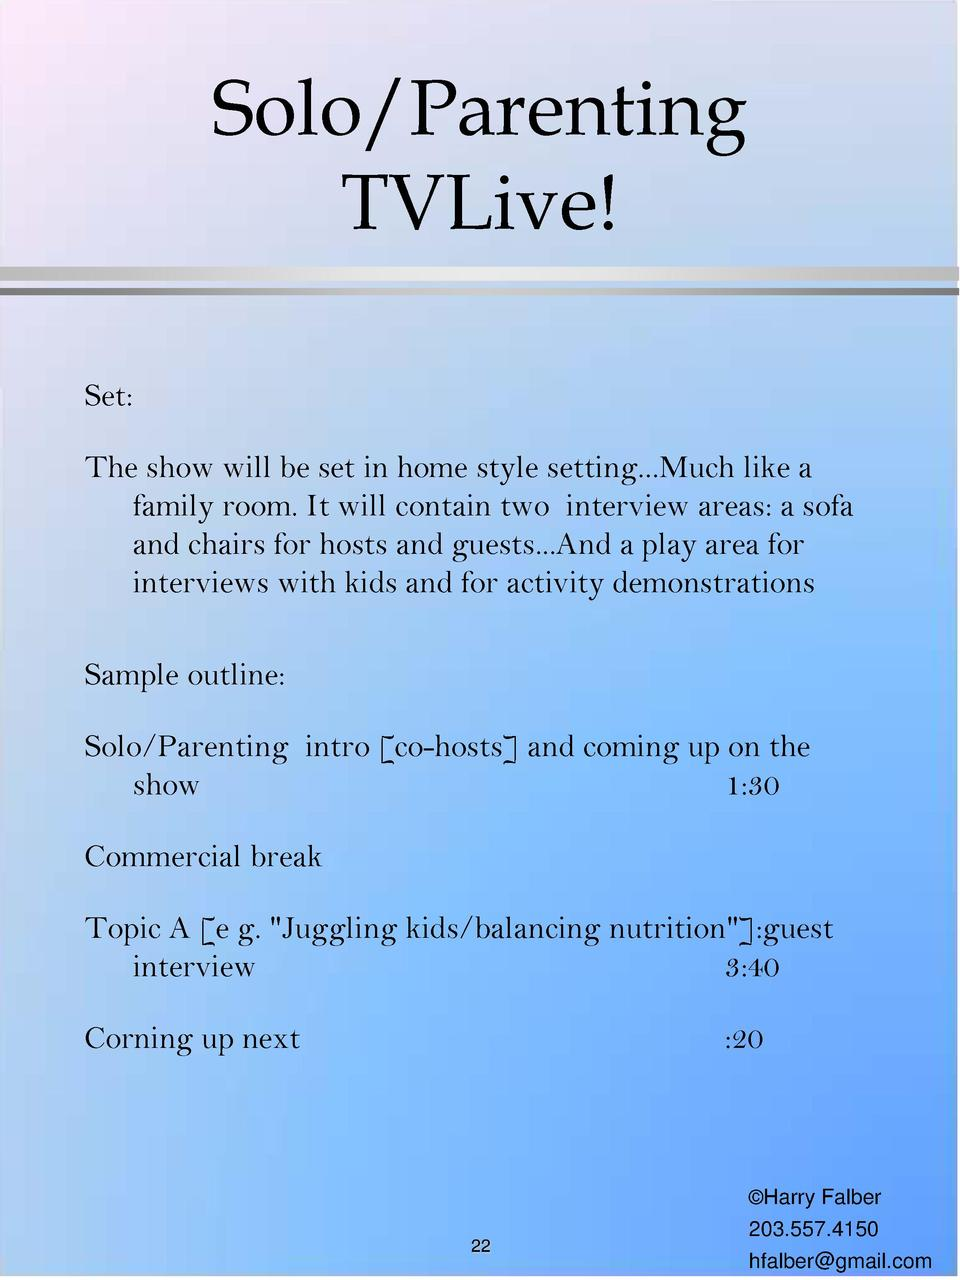 Solo Parenting TVLive  Set  The show will be set in home style setting...Much like a family room. It will contain two inte...